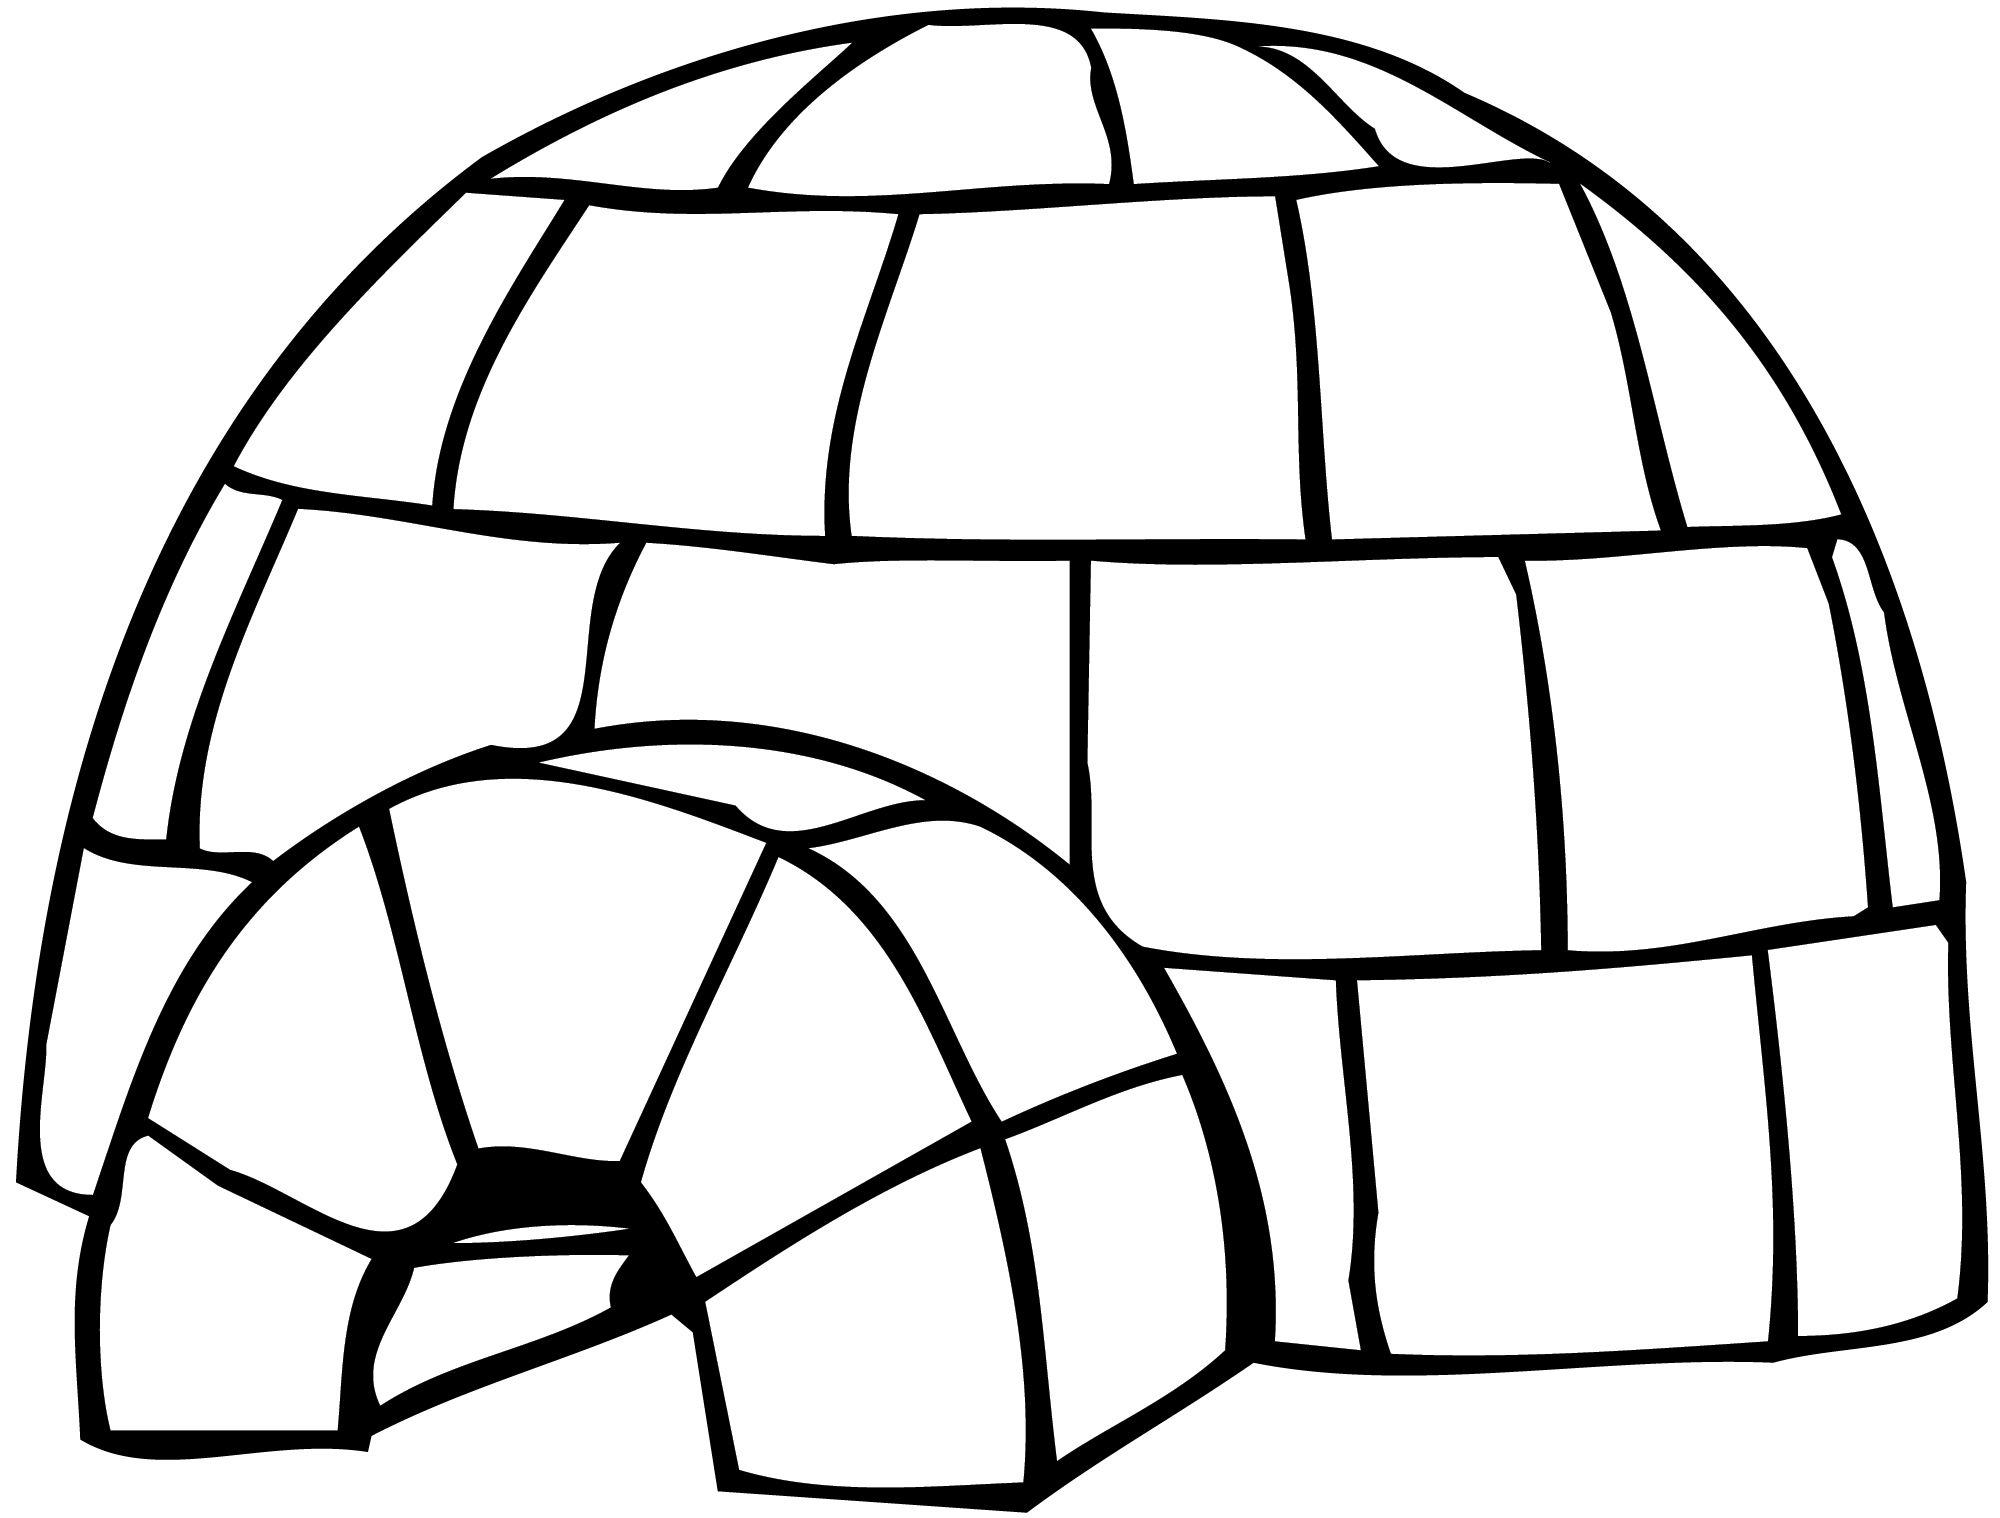 Best Igloo Clipart 11283 Clipartion Com Coloring Pages Penguin Coloring Pages Igloo Craft